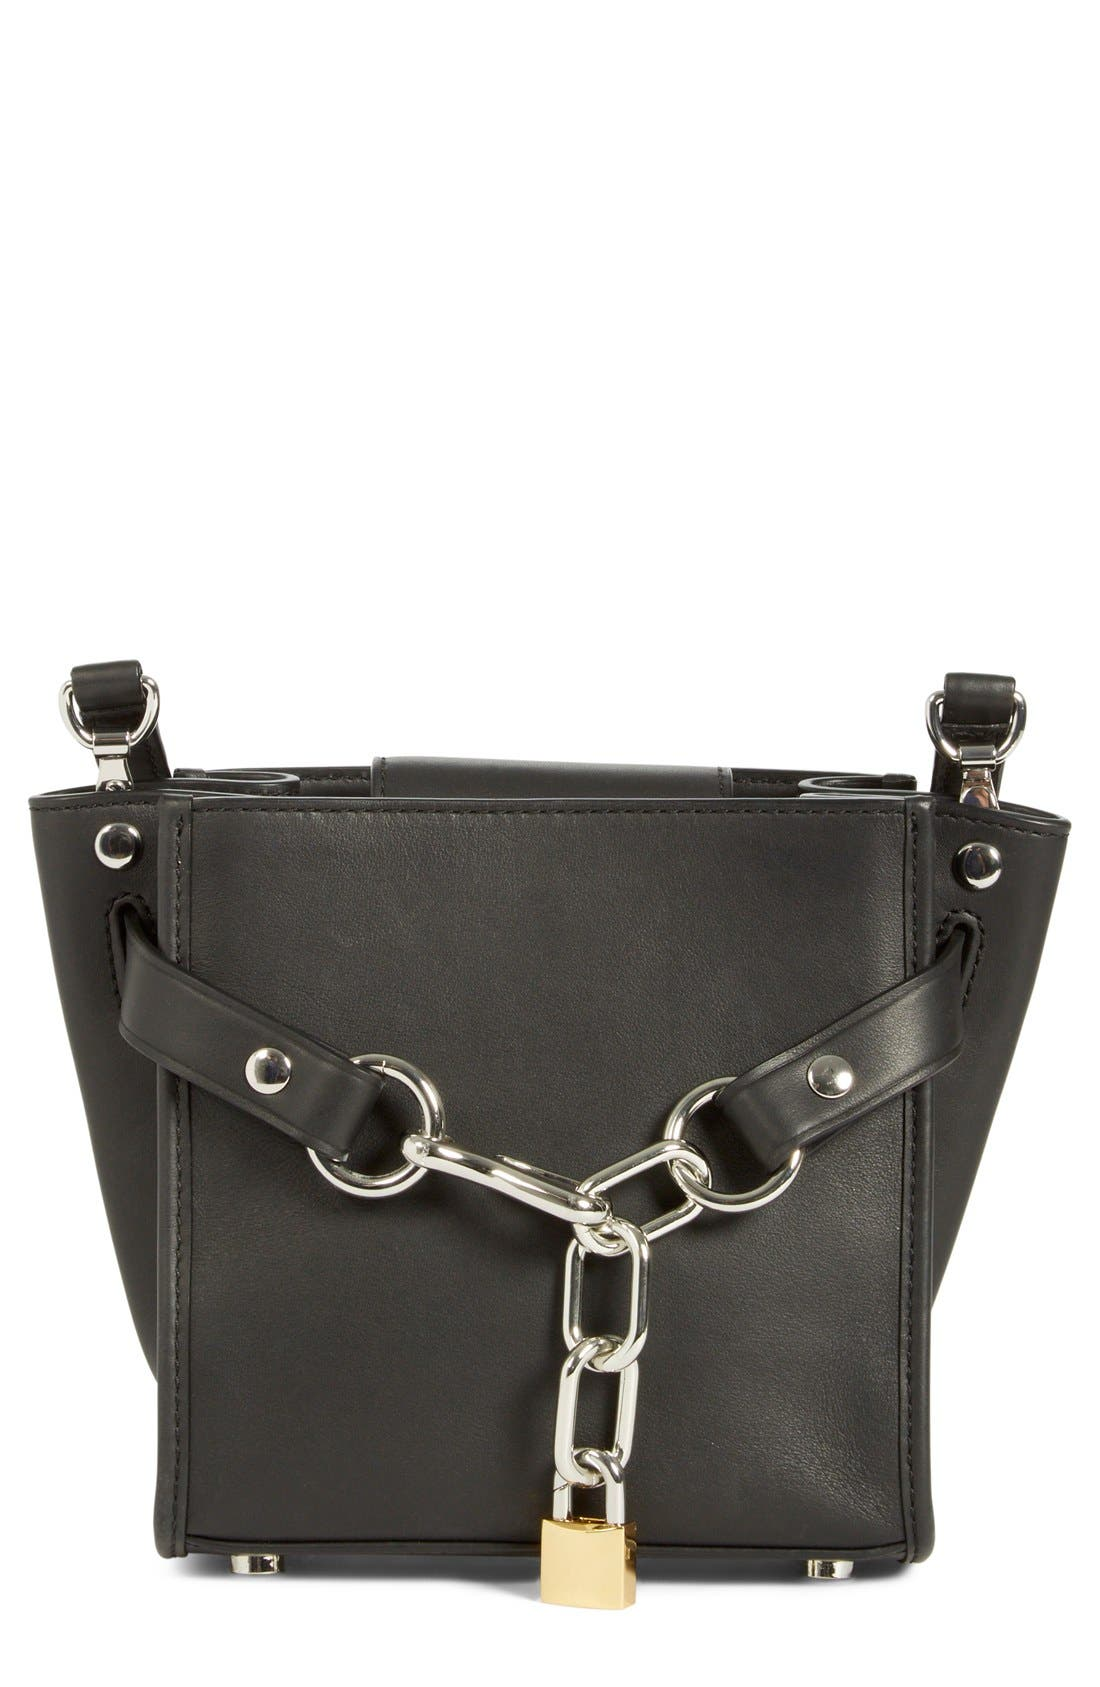 ALEXANDER WANG 'Mini Attica' Leather Crossbody Bag